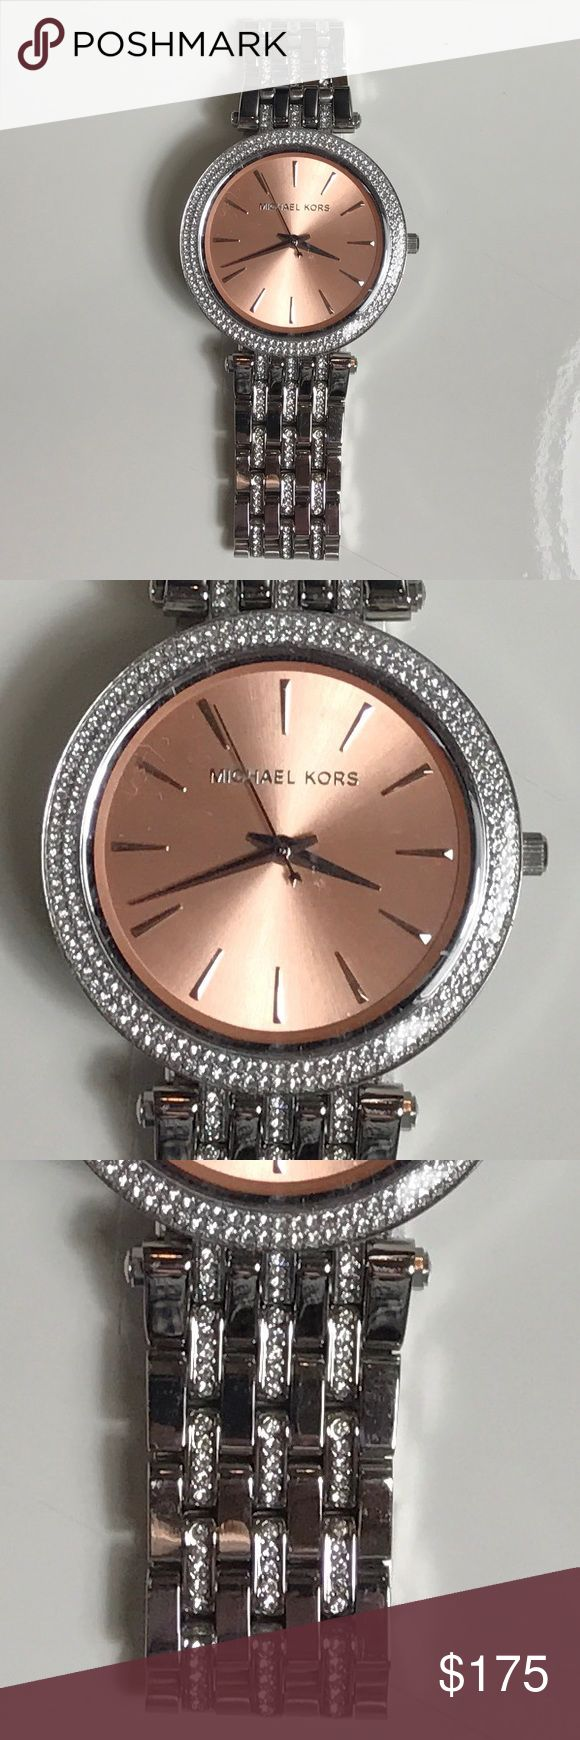 Michael Kors Women's Silver Watch Brand new with original case and card. Chronograph. Rhinestones on bracelet. Michael Kors Accessories Watches